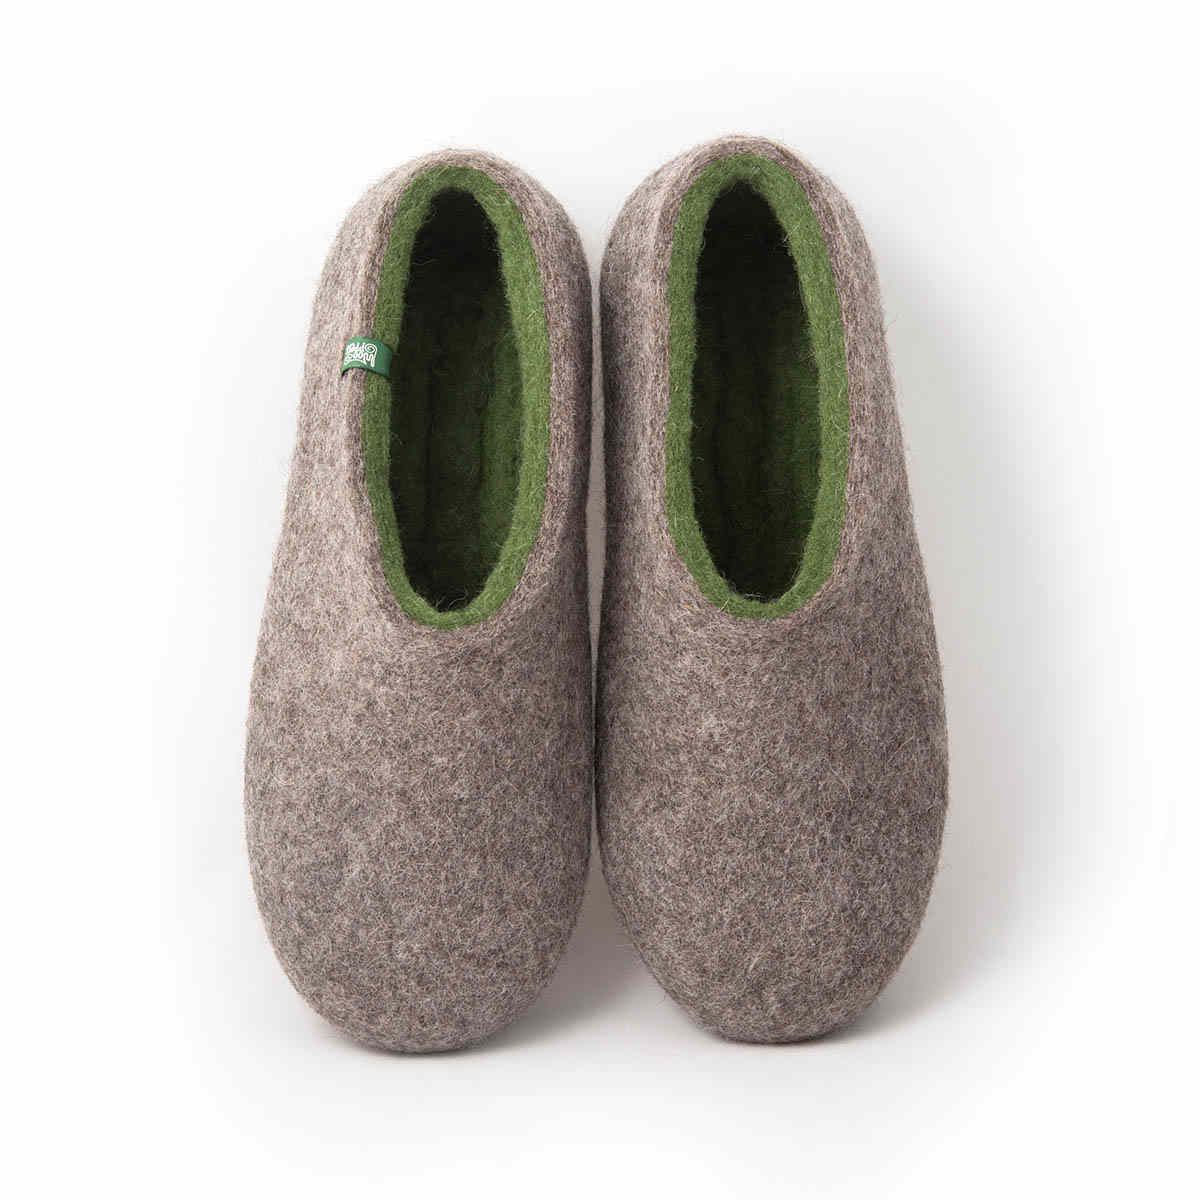 Mens wool clogs DUAL NATURAL olive green